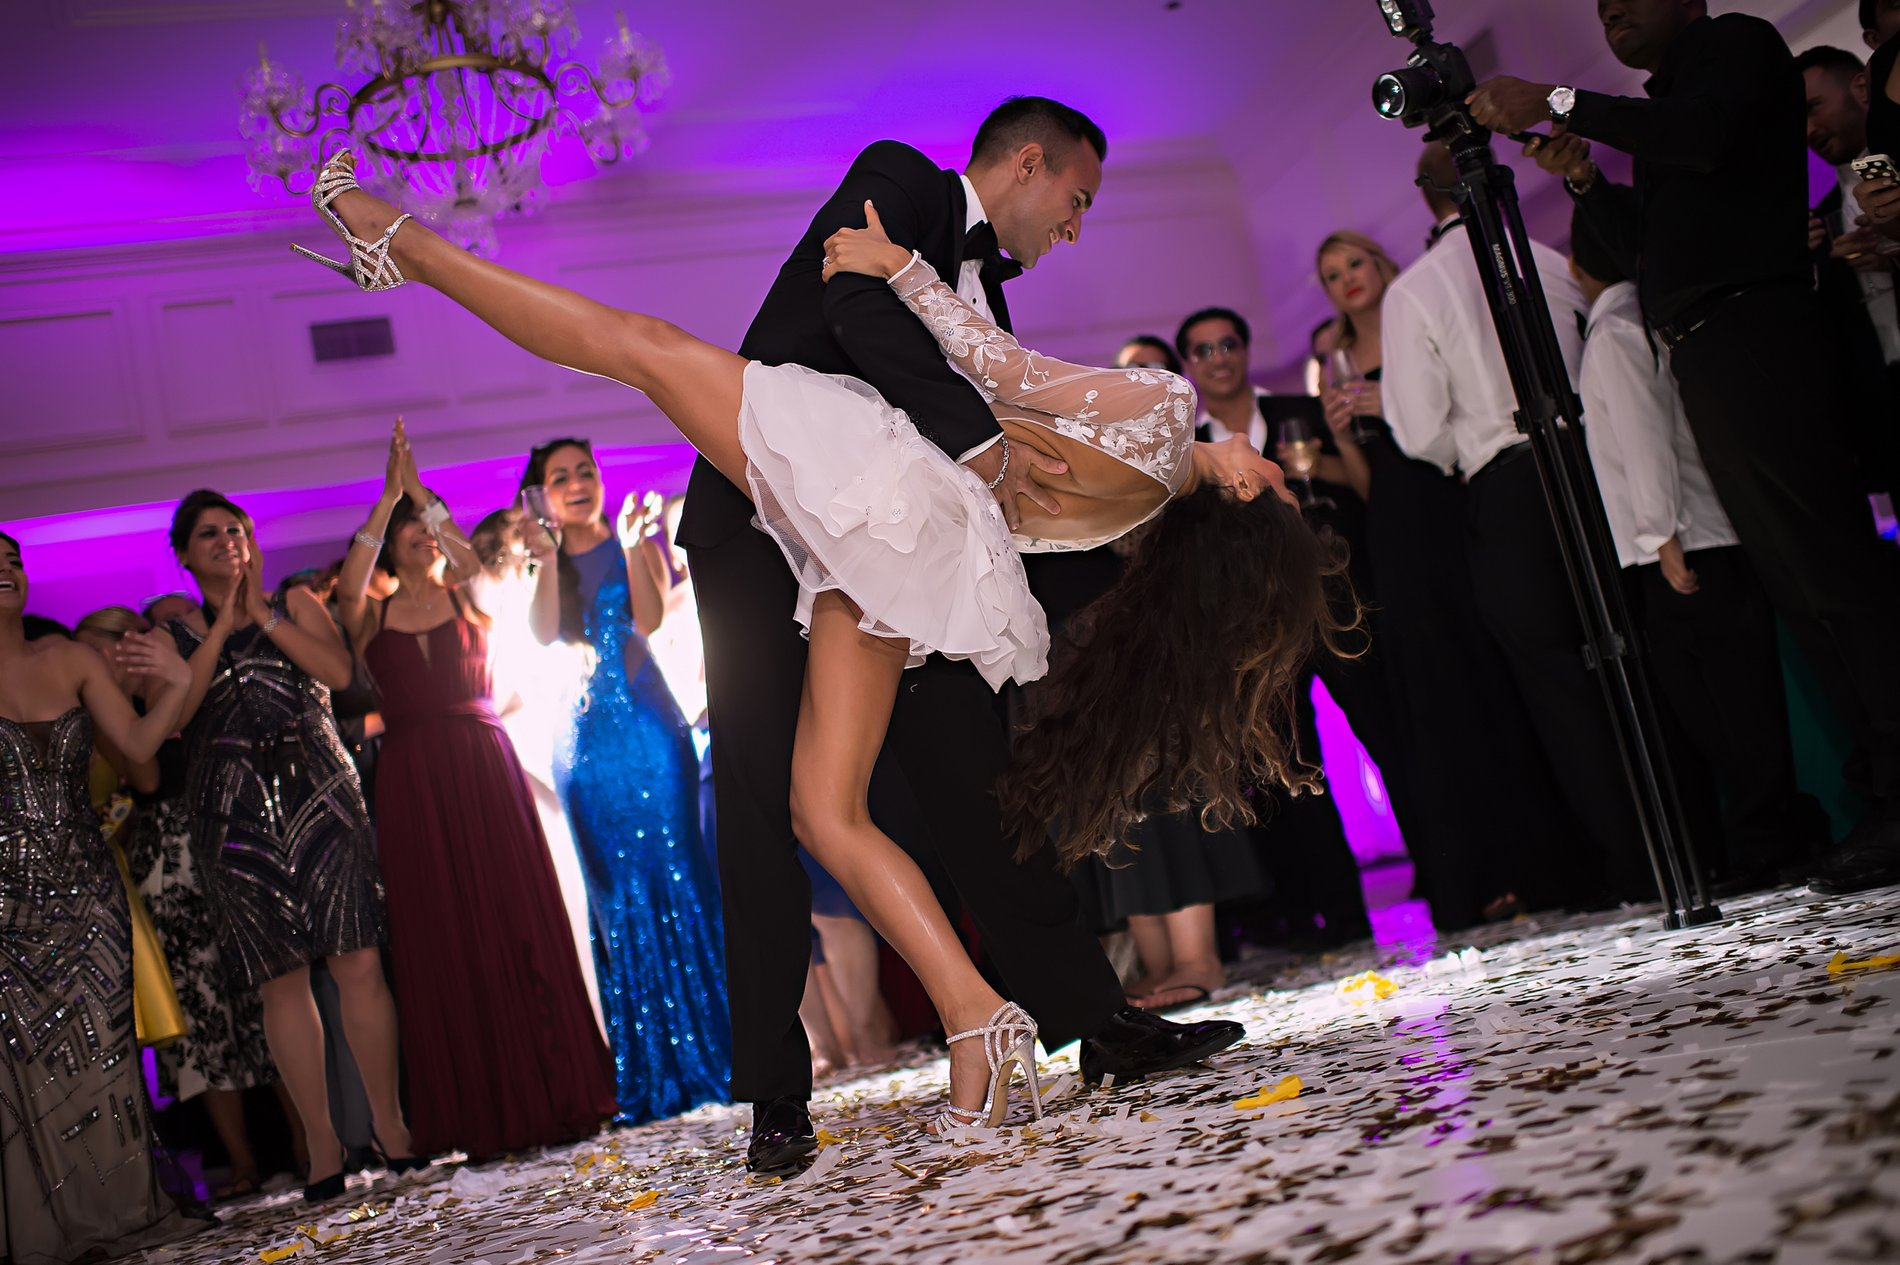 miami party wedding reception photos